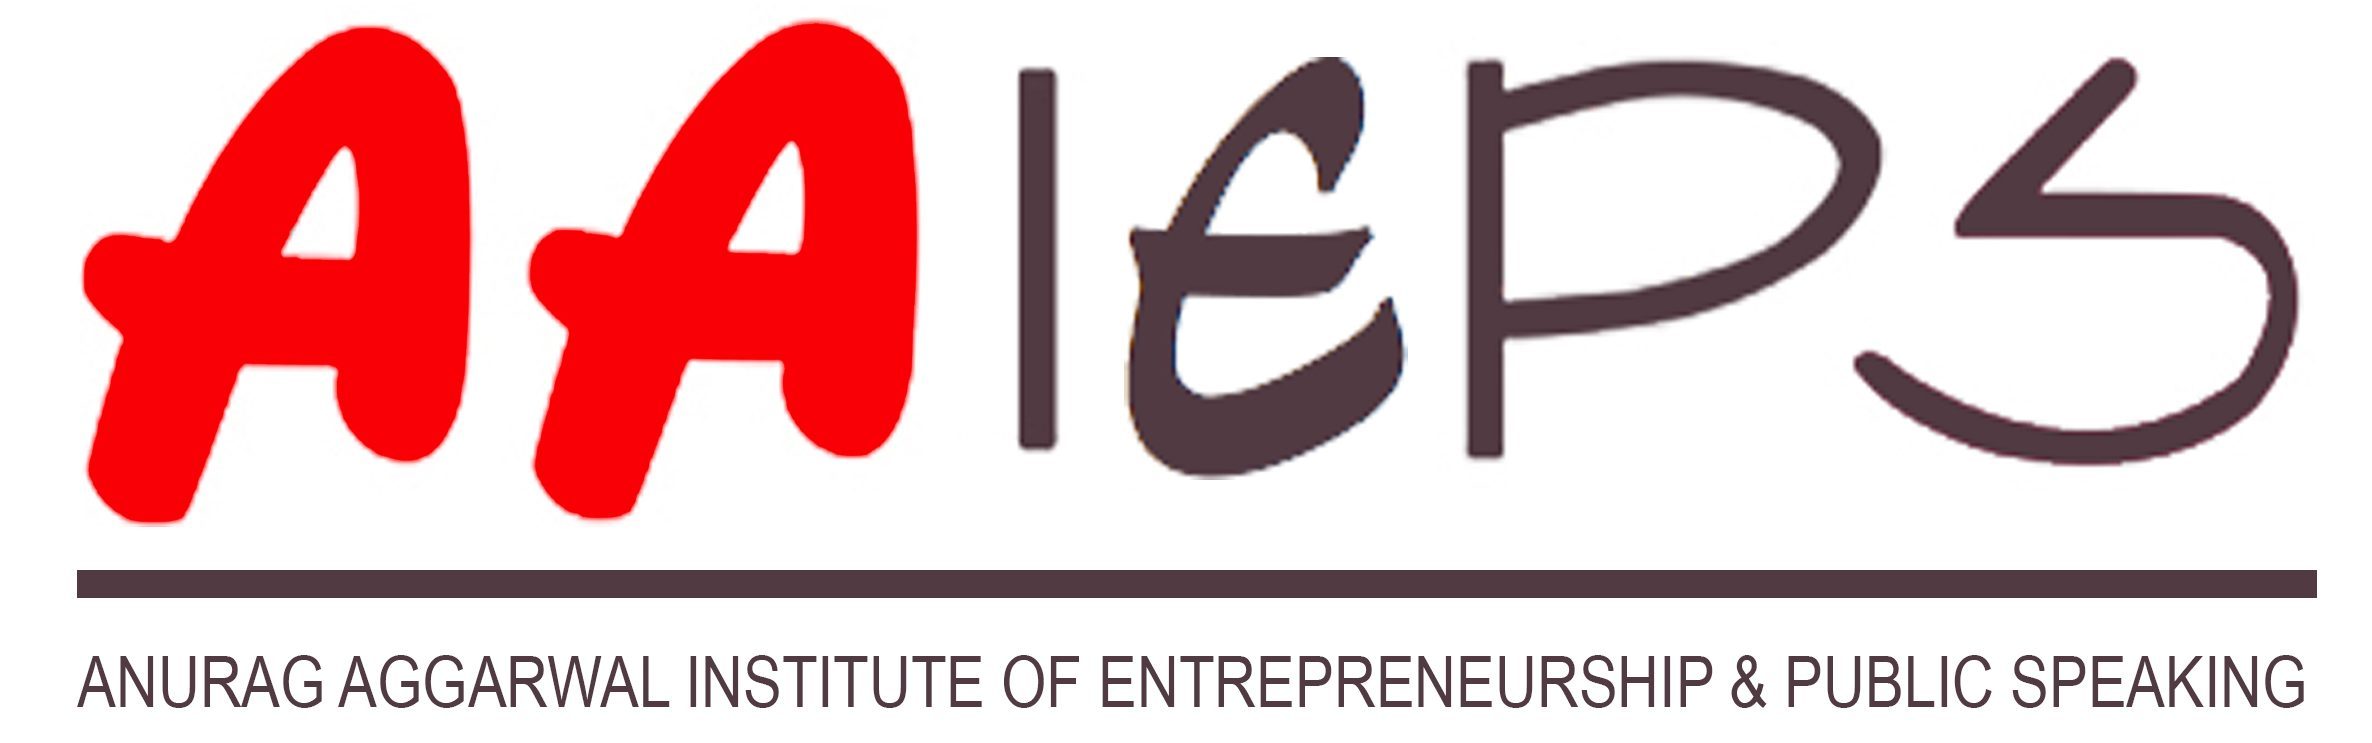 AAIEPS | Anurag Aggarwal Institute of Entrepreneurship & Public Speaking